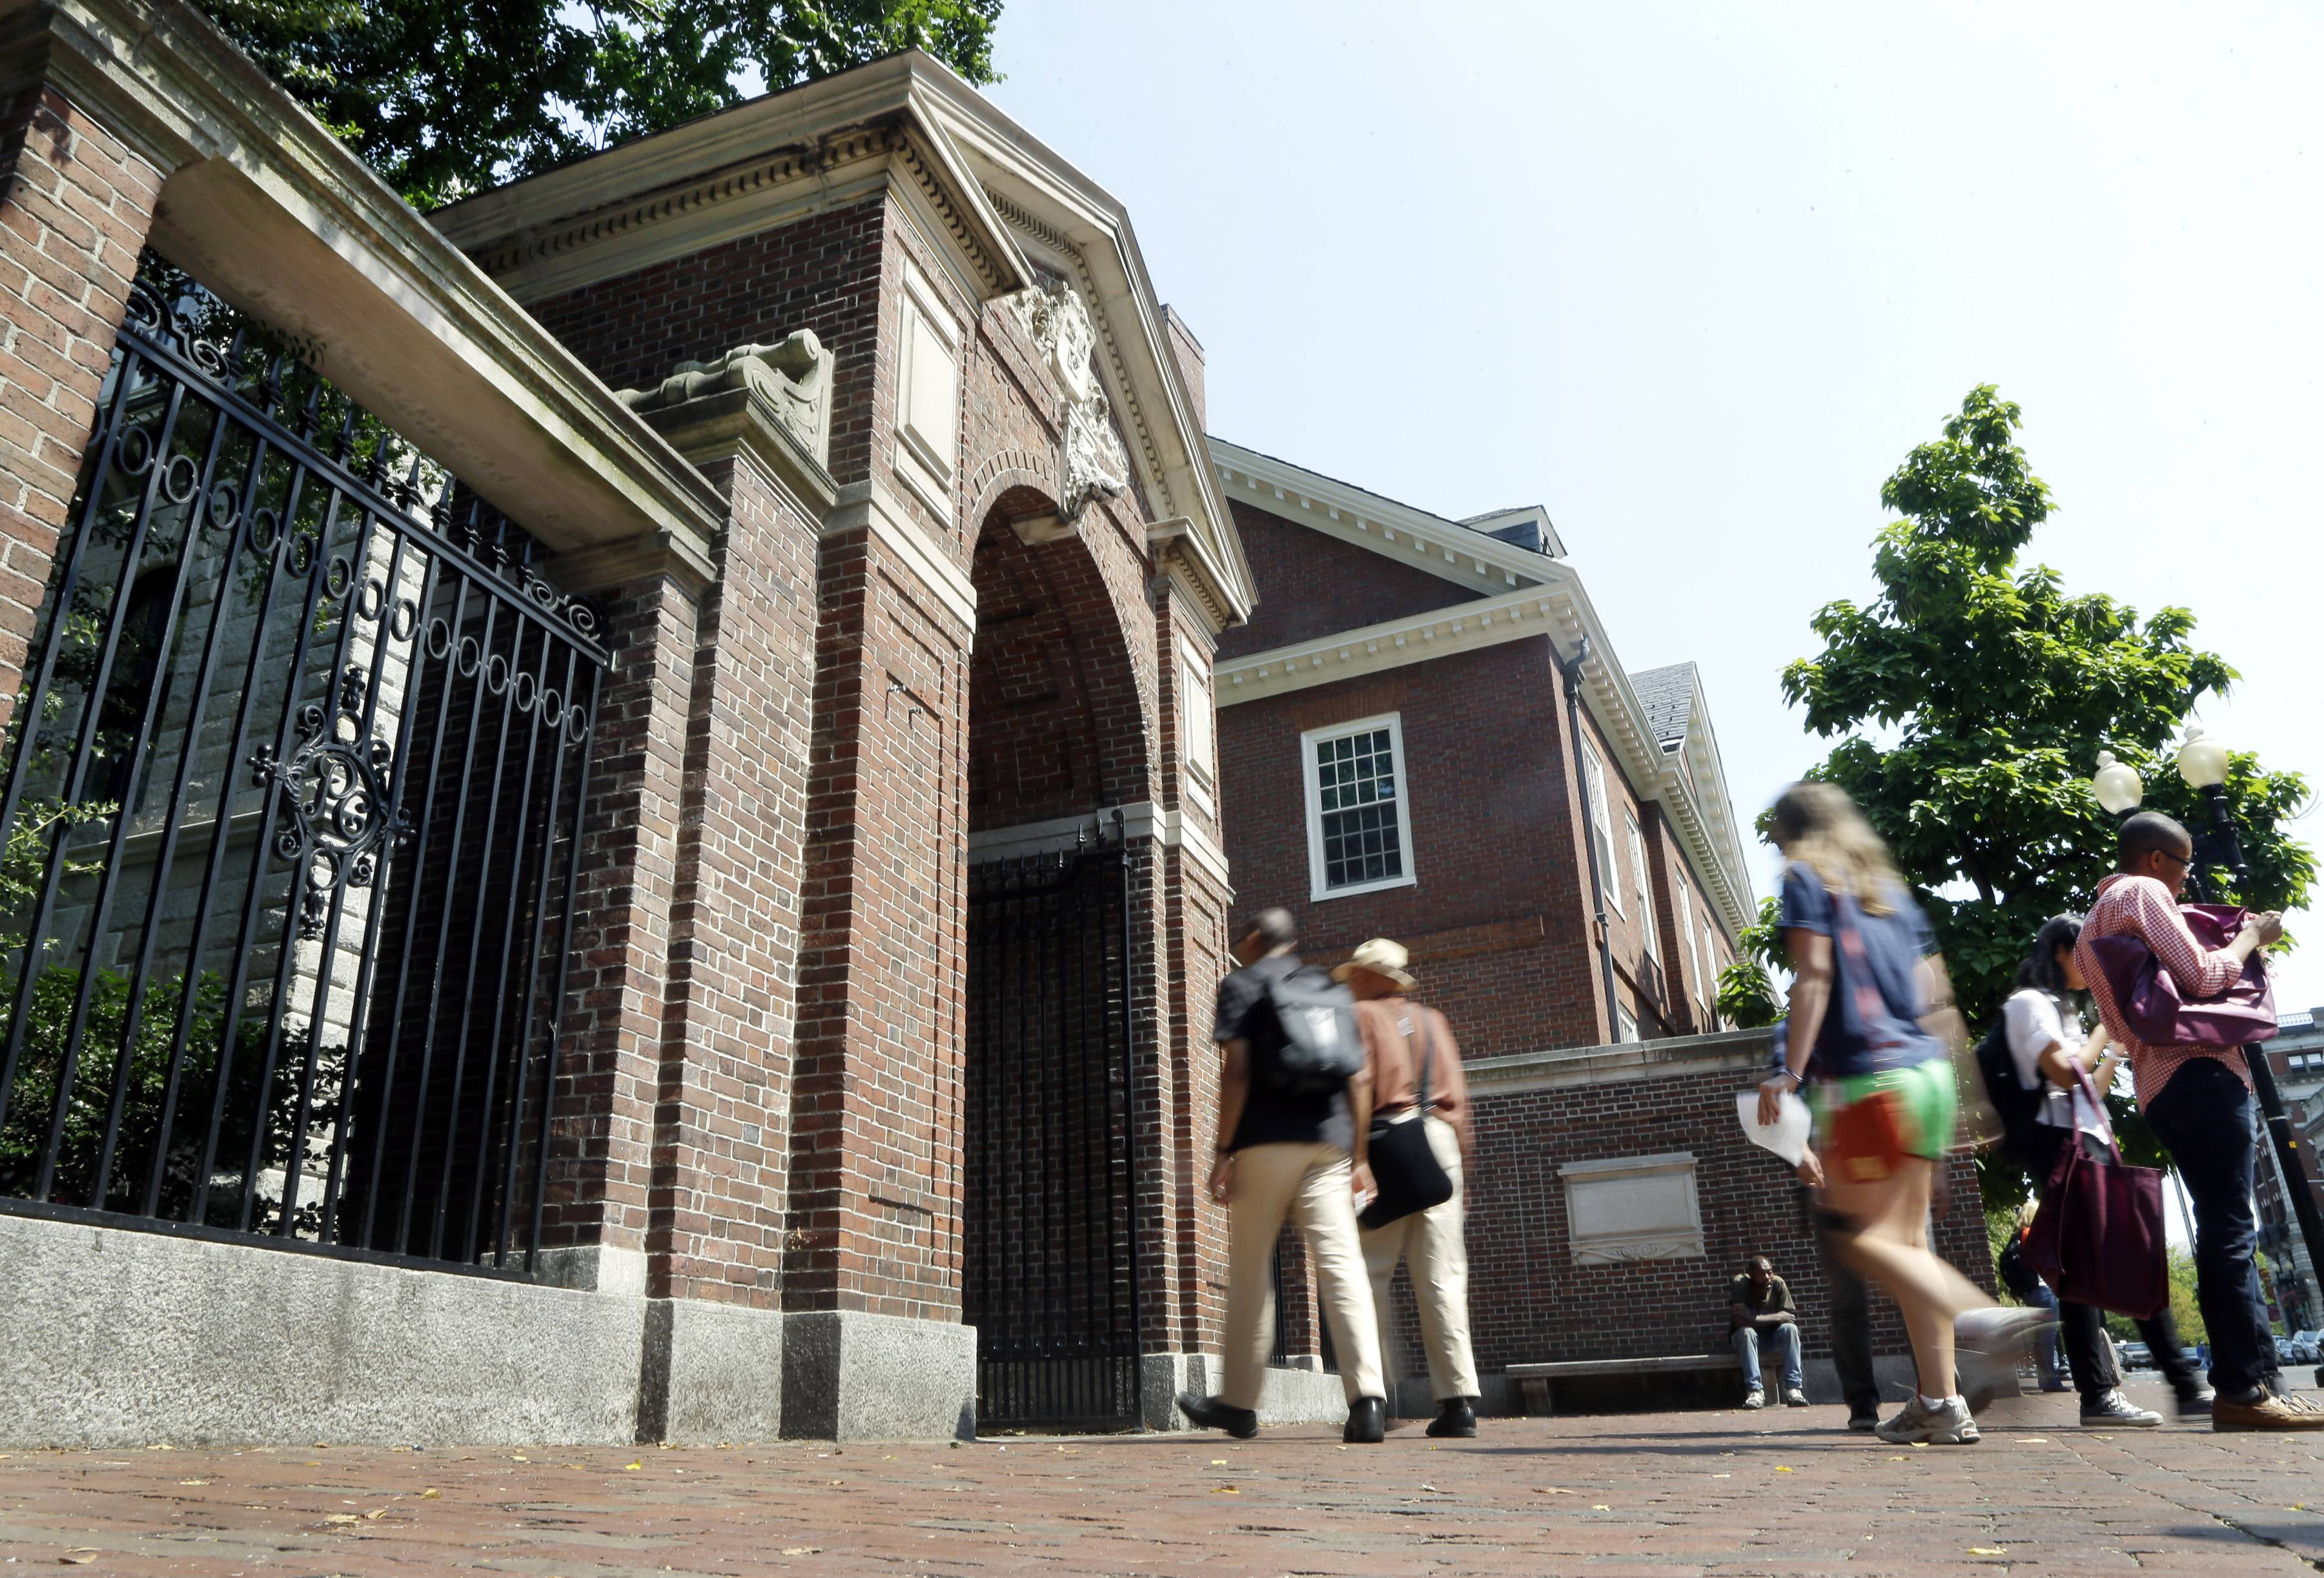 Harvard University in Cambridge, Mass., is the country's first institution of higher education, dating back to 1636.